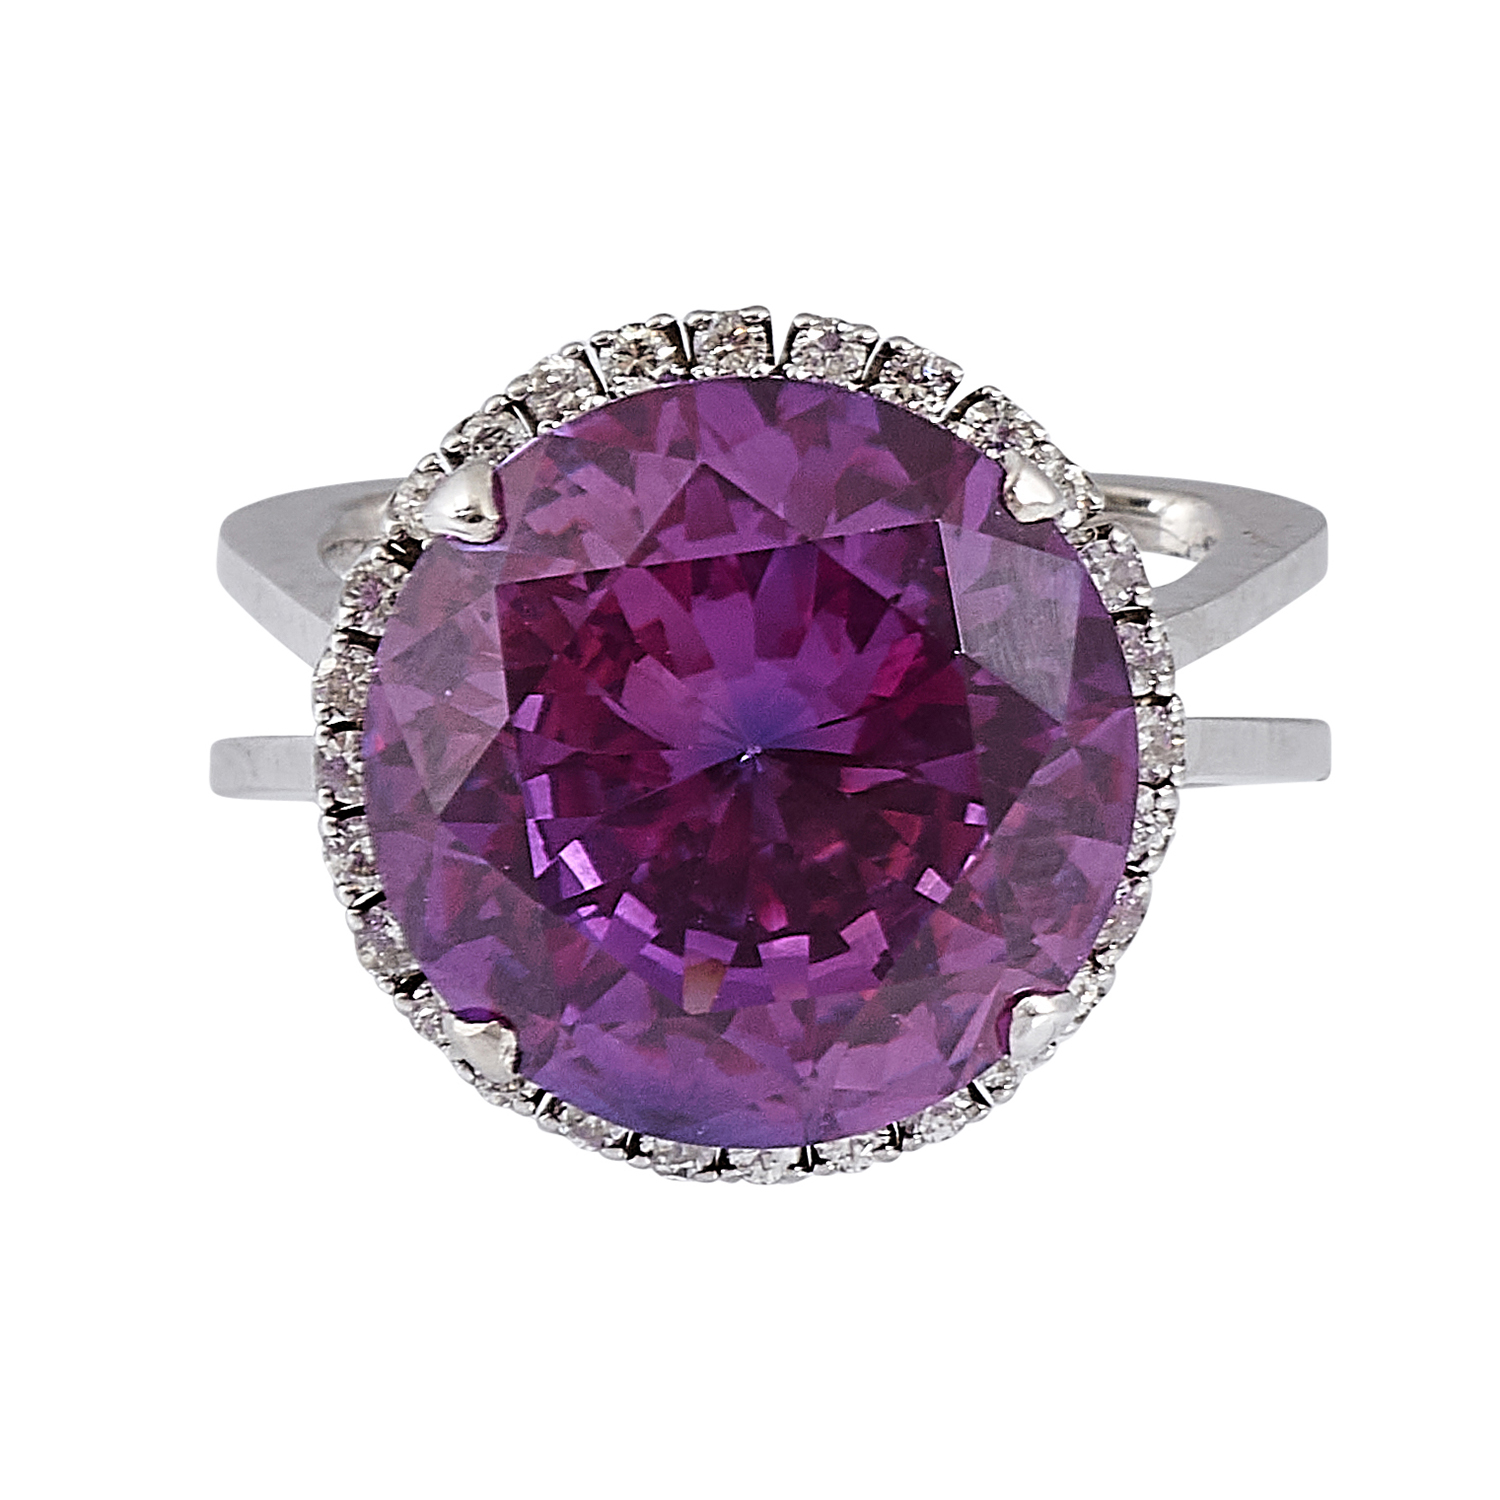 Contemporary white gold, lab-created purple sapphire and diamond ladies ring size: 6 1/2